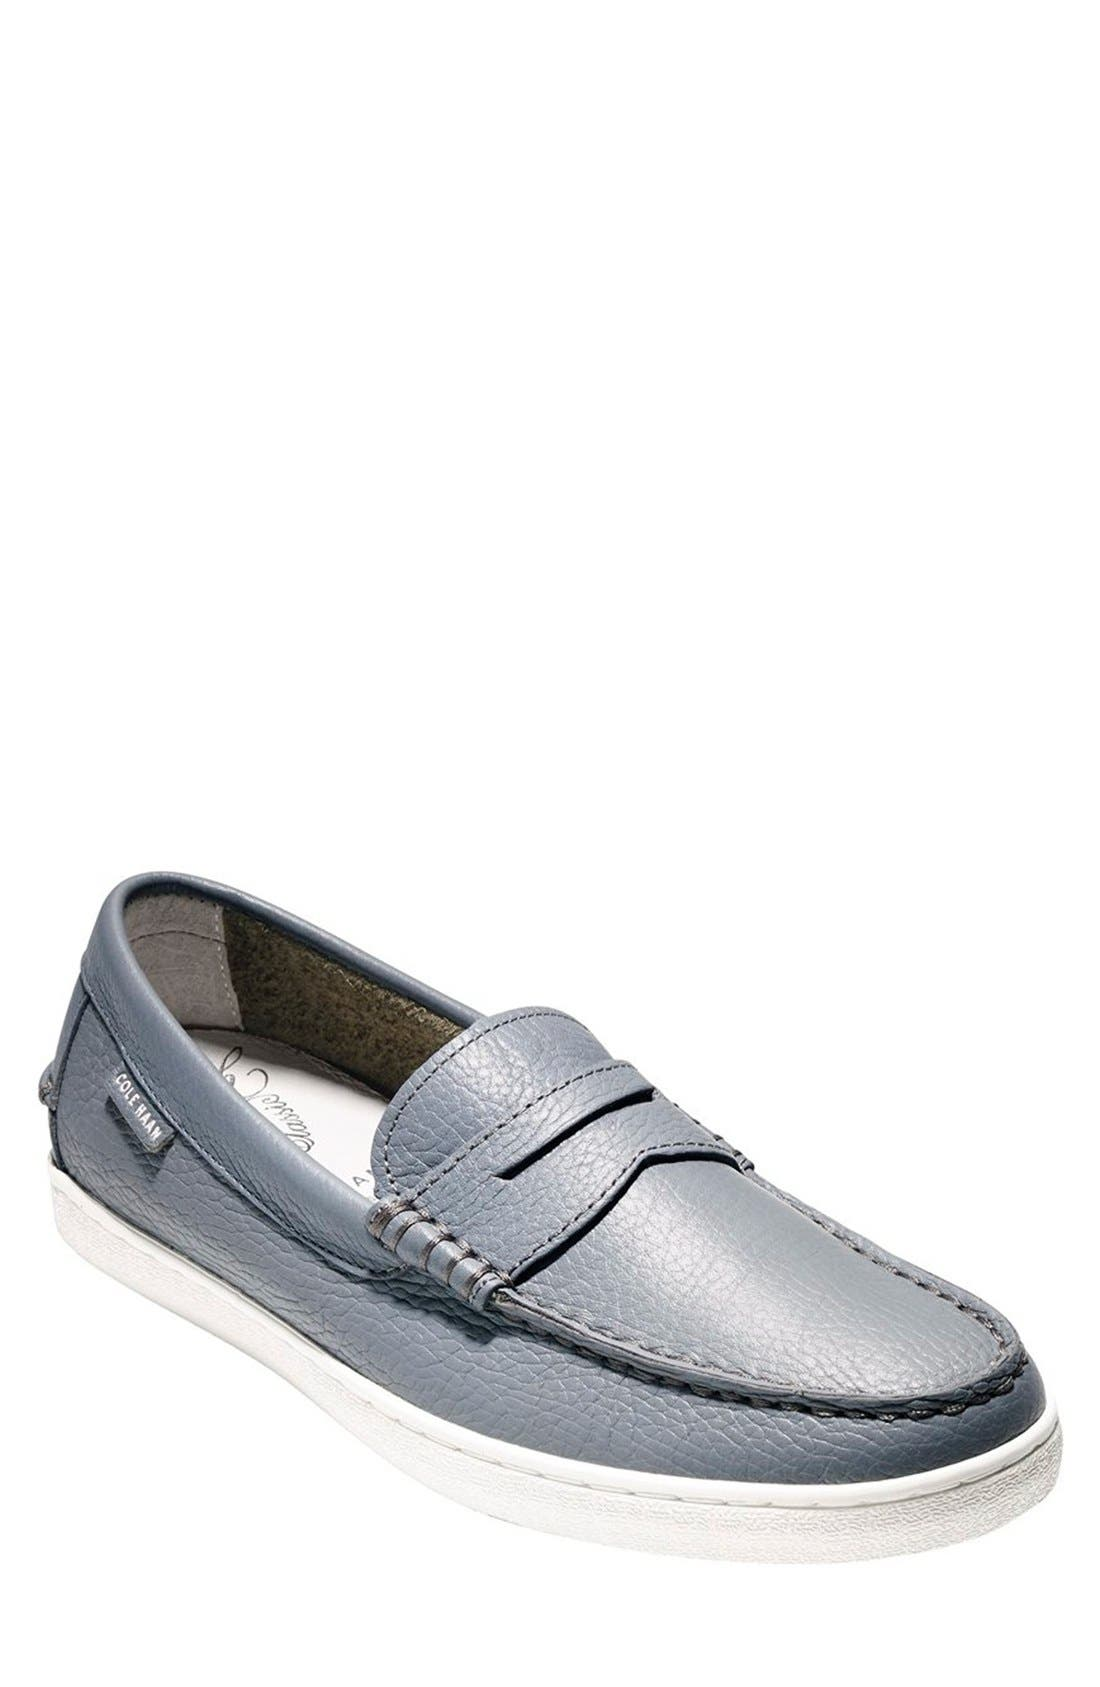 Main Image - Cole Haan 'Pinch' Penny Loafer (Men)